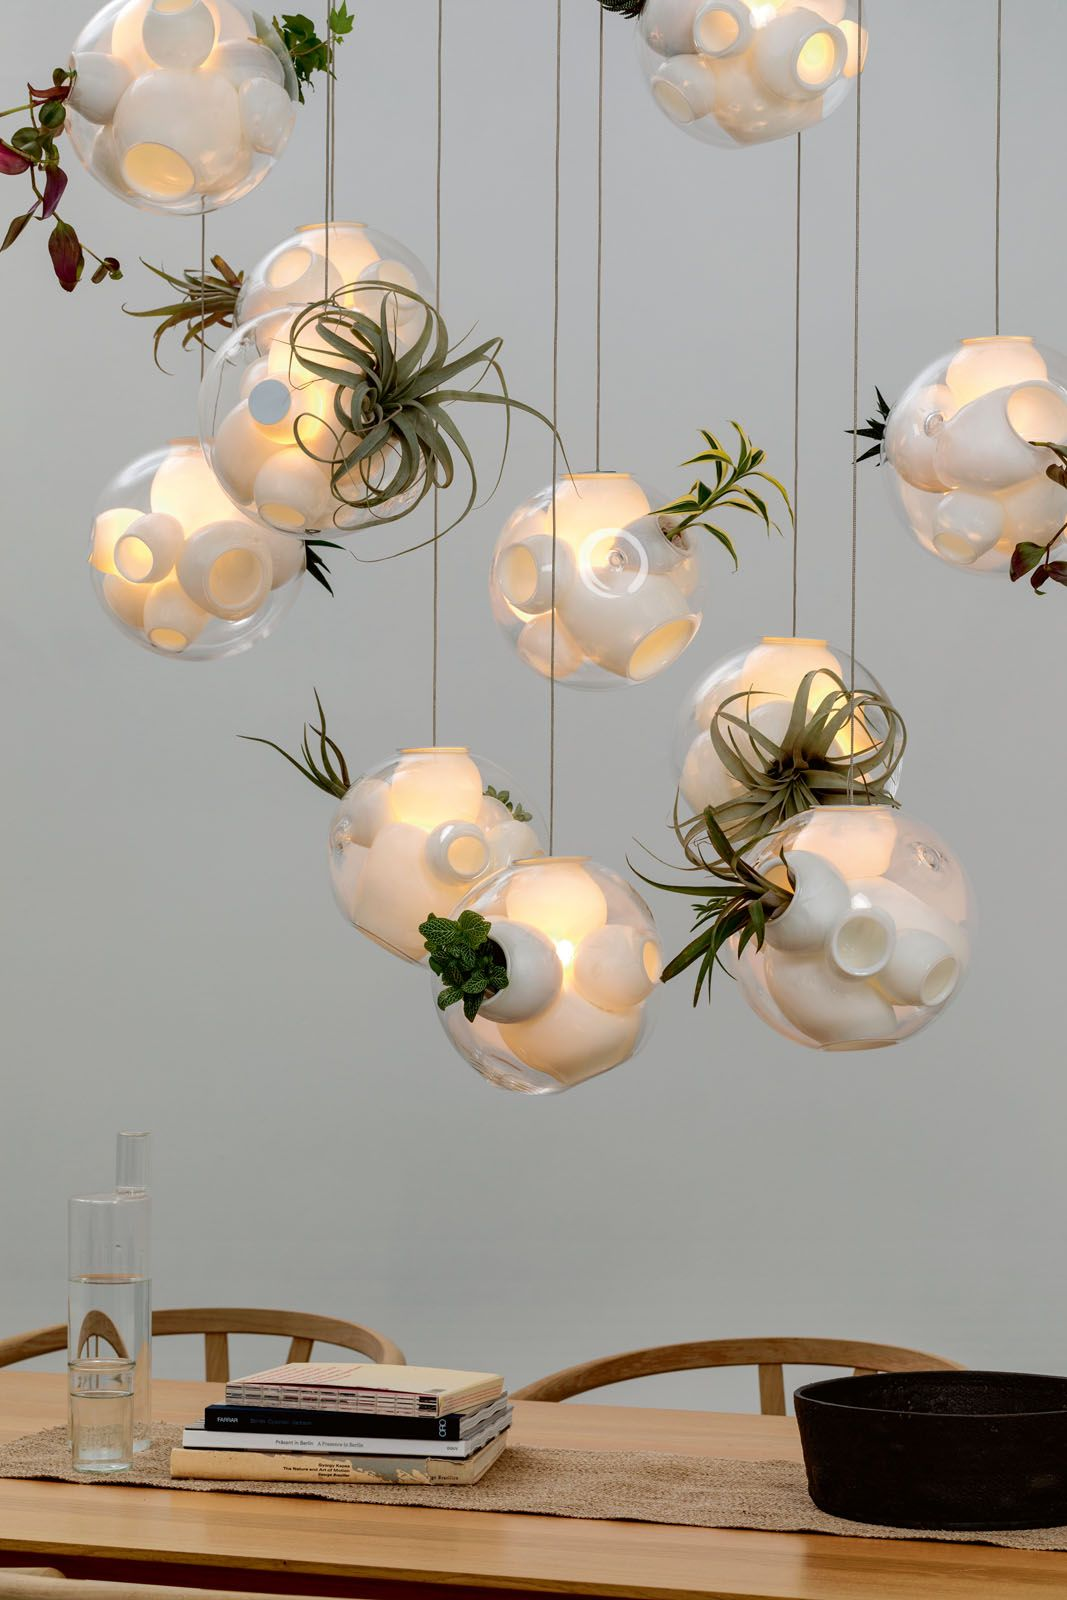 Bocci 38.11V lamps by Omer Arbel, from Space Furniture